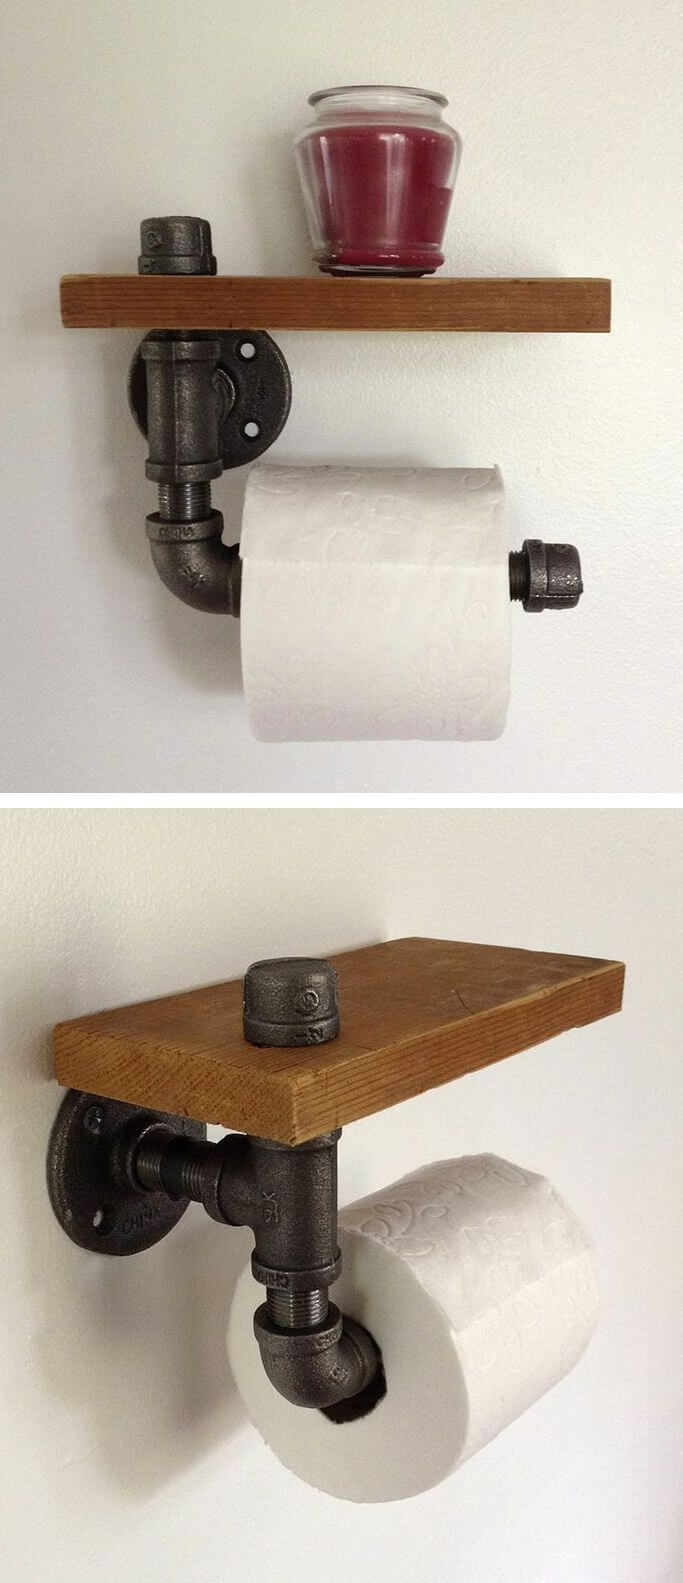 Pipe-fitting Toilet Paper Holder with Shelf